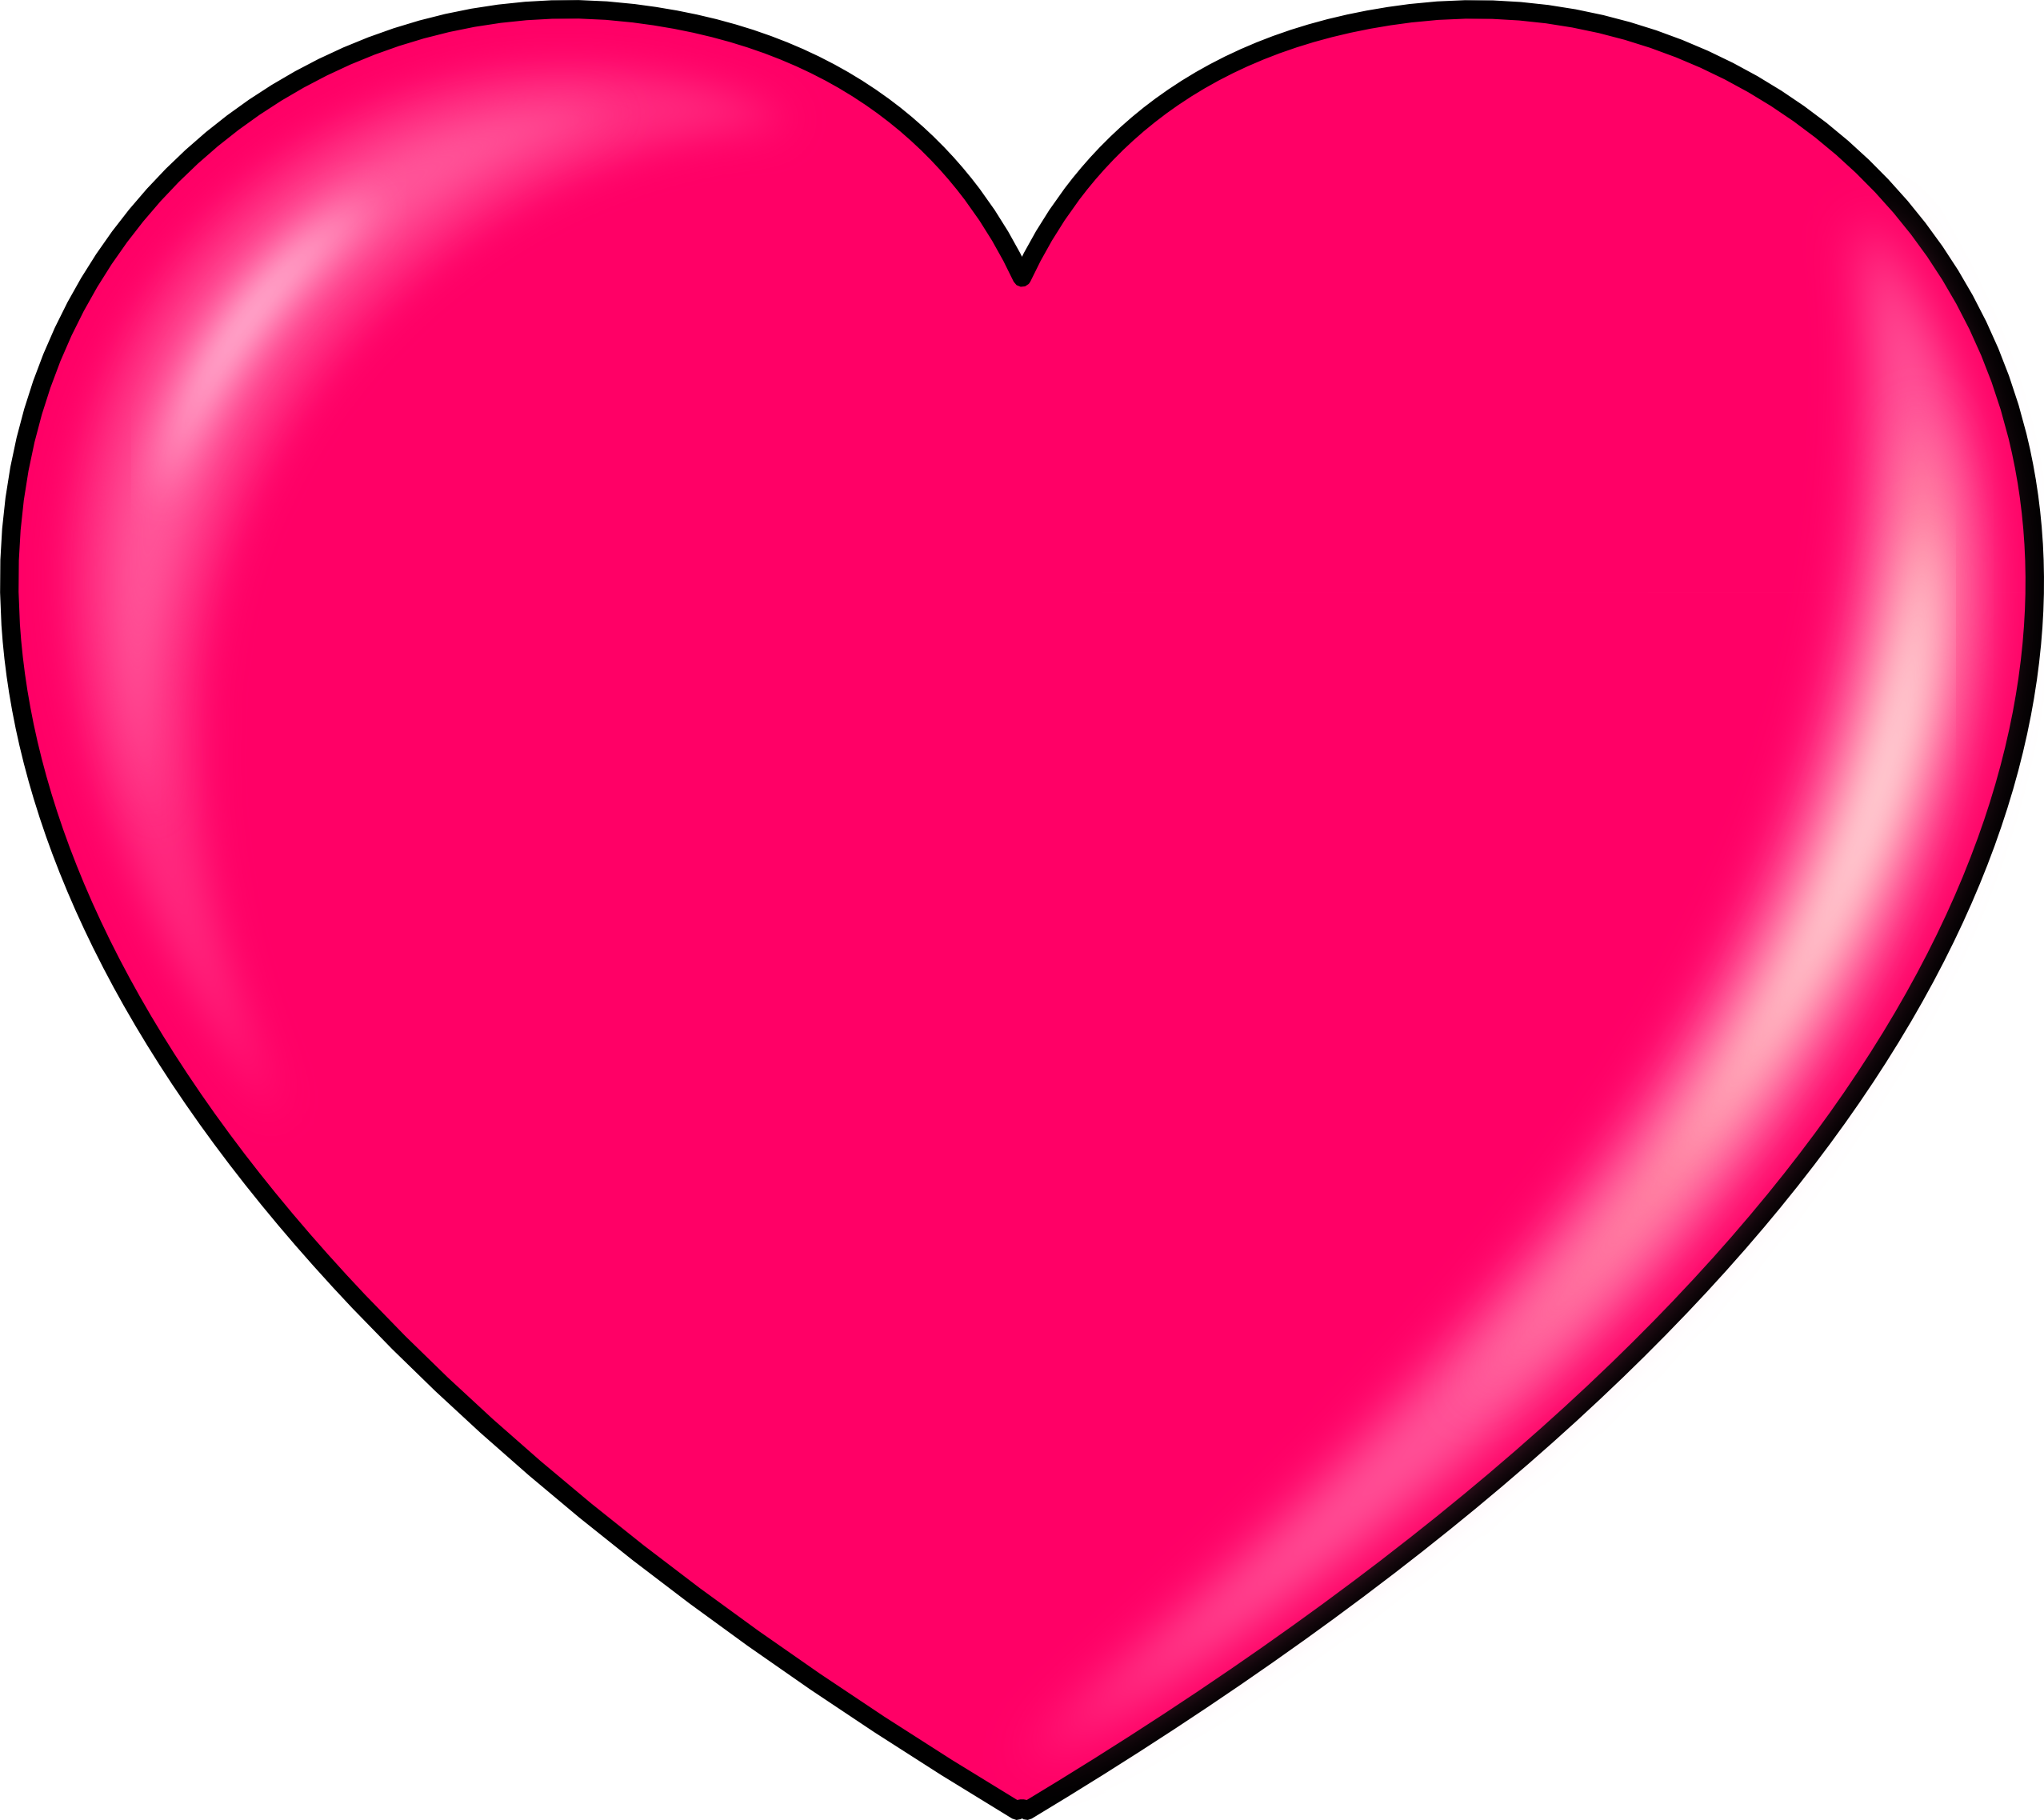 Free images download. Heart shape png transparent vector black and white download